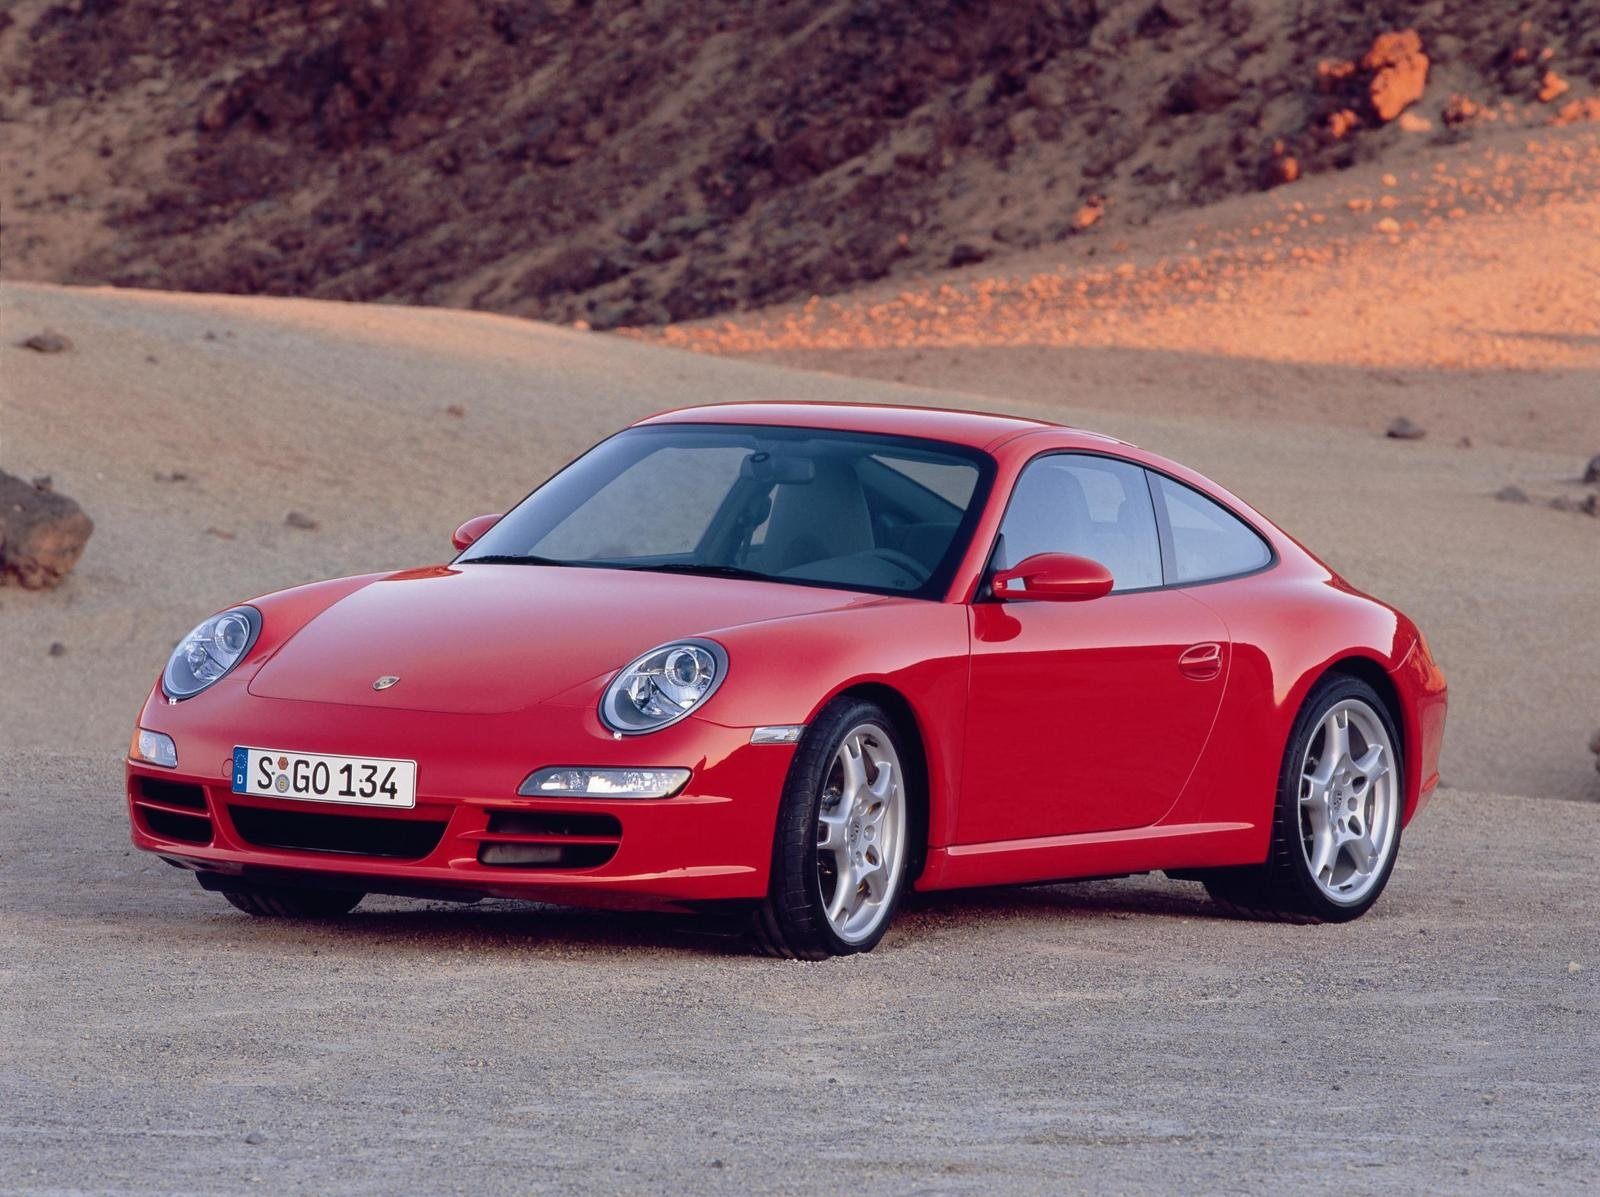 2005 porsche 911 carrera s 997 picture 70928 car. Black Bedroom Furniture Sets. Home Design Ideas